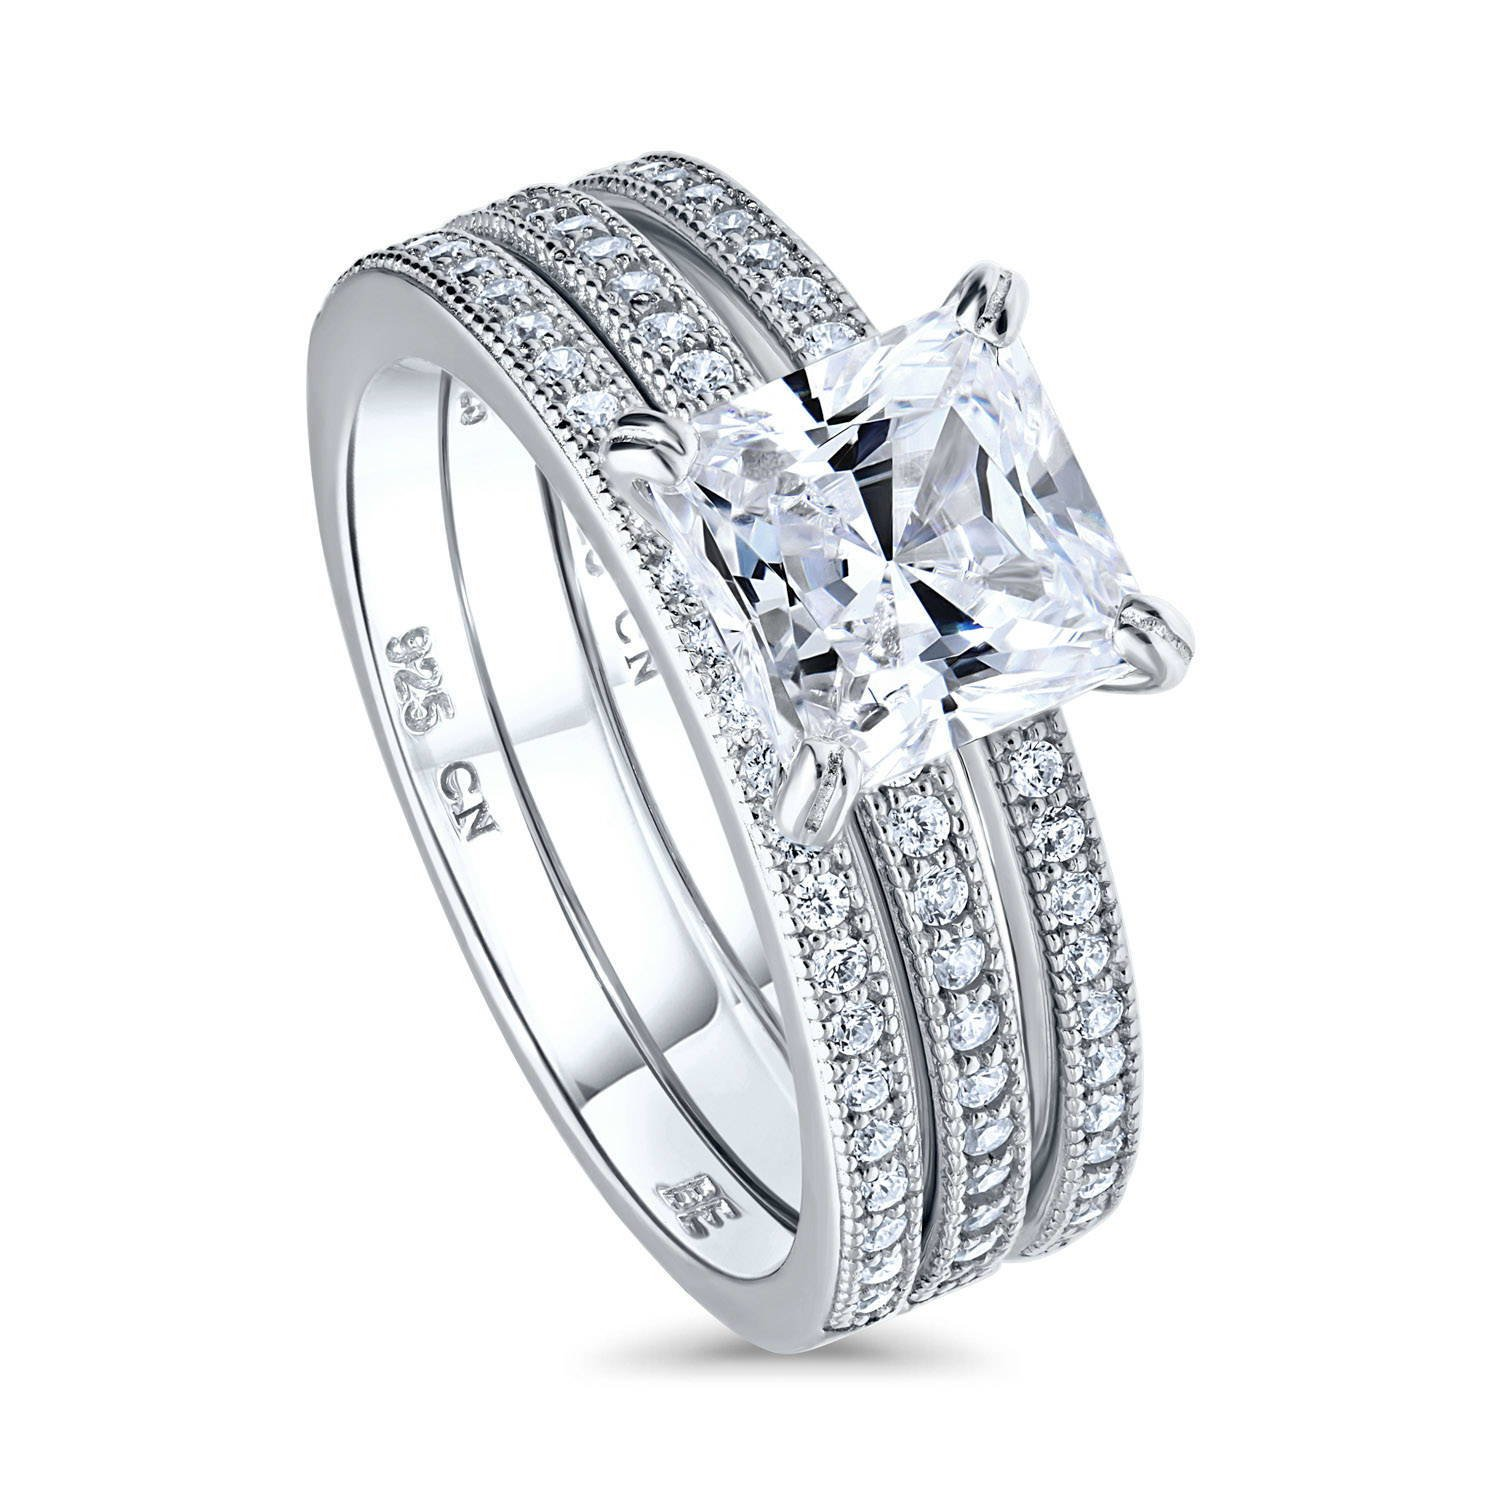 BERRICLE Rhodium Plated Sterling Silver Princess Cut Cubic Zirconia CZ Solitaire Engagement Wedding Ring Set 2.37 CTW Size 6.5